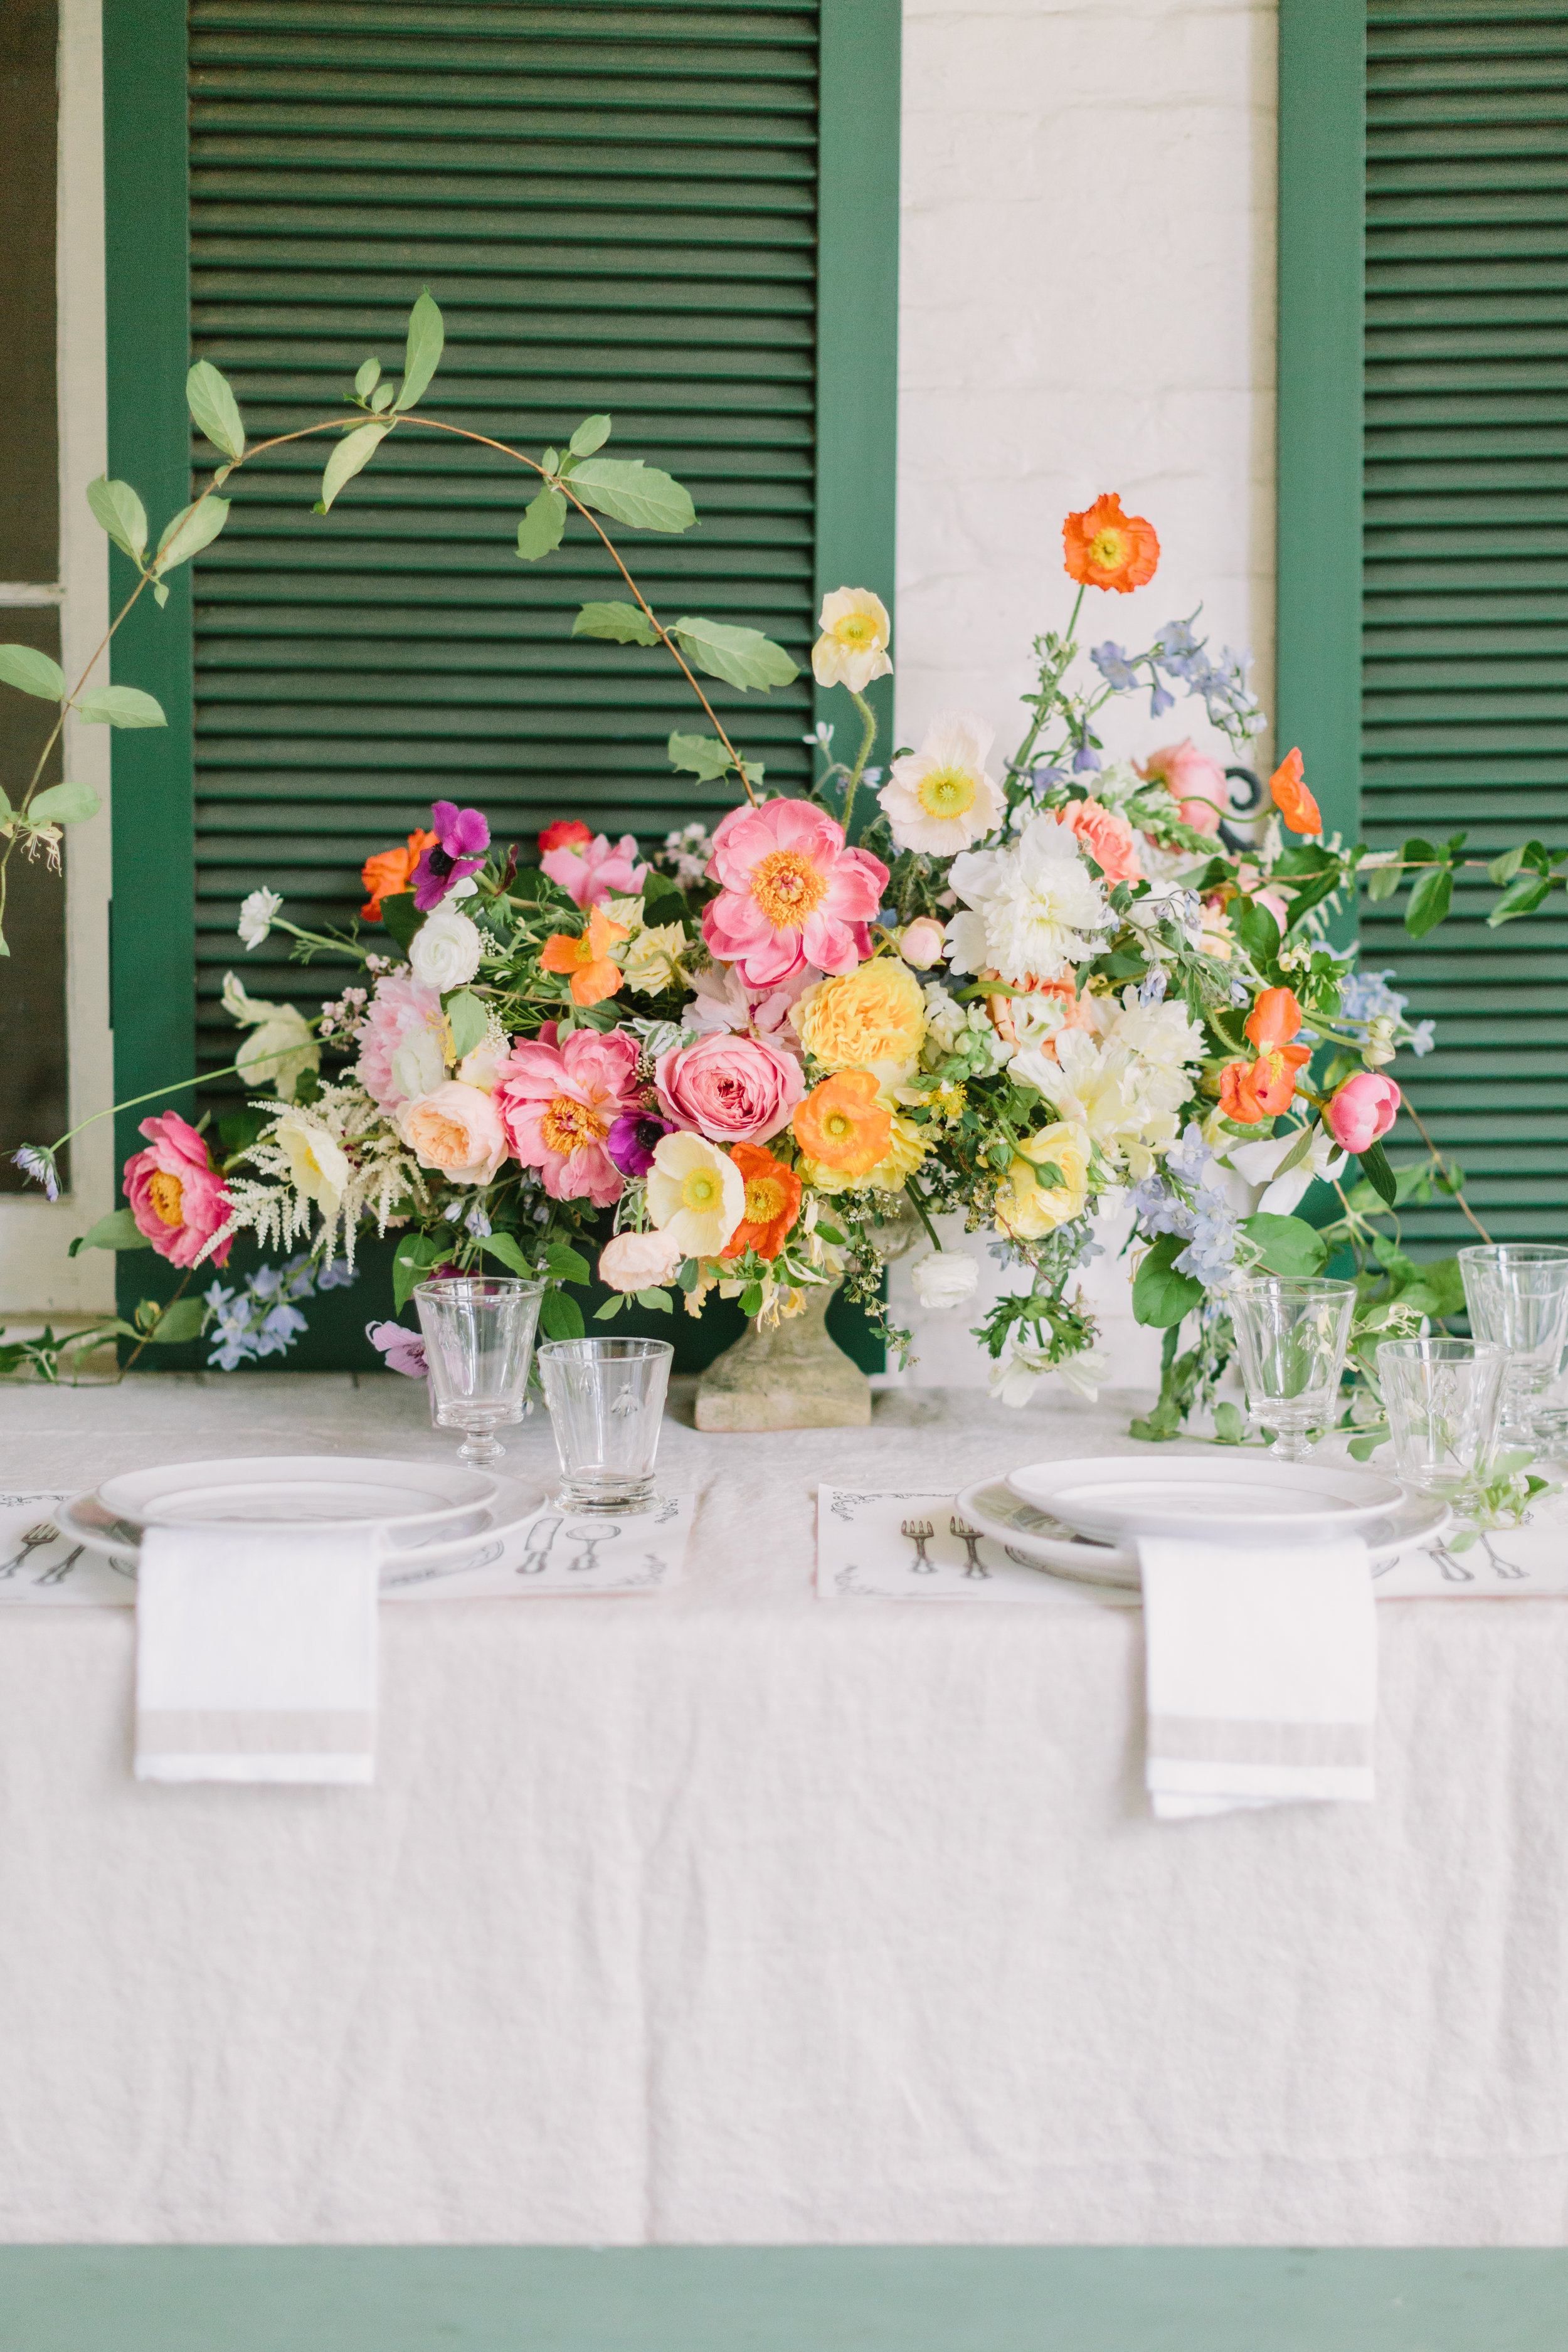 jessica-zimmerman-events-summer-wedding-colorful-tablescape.JPG